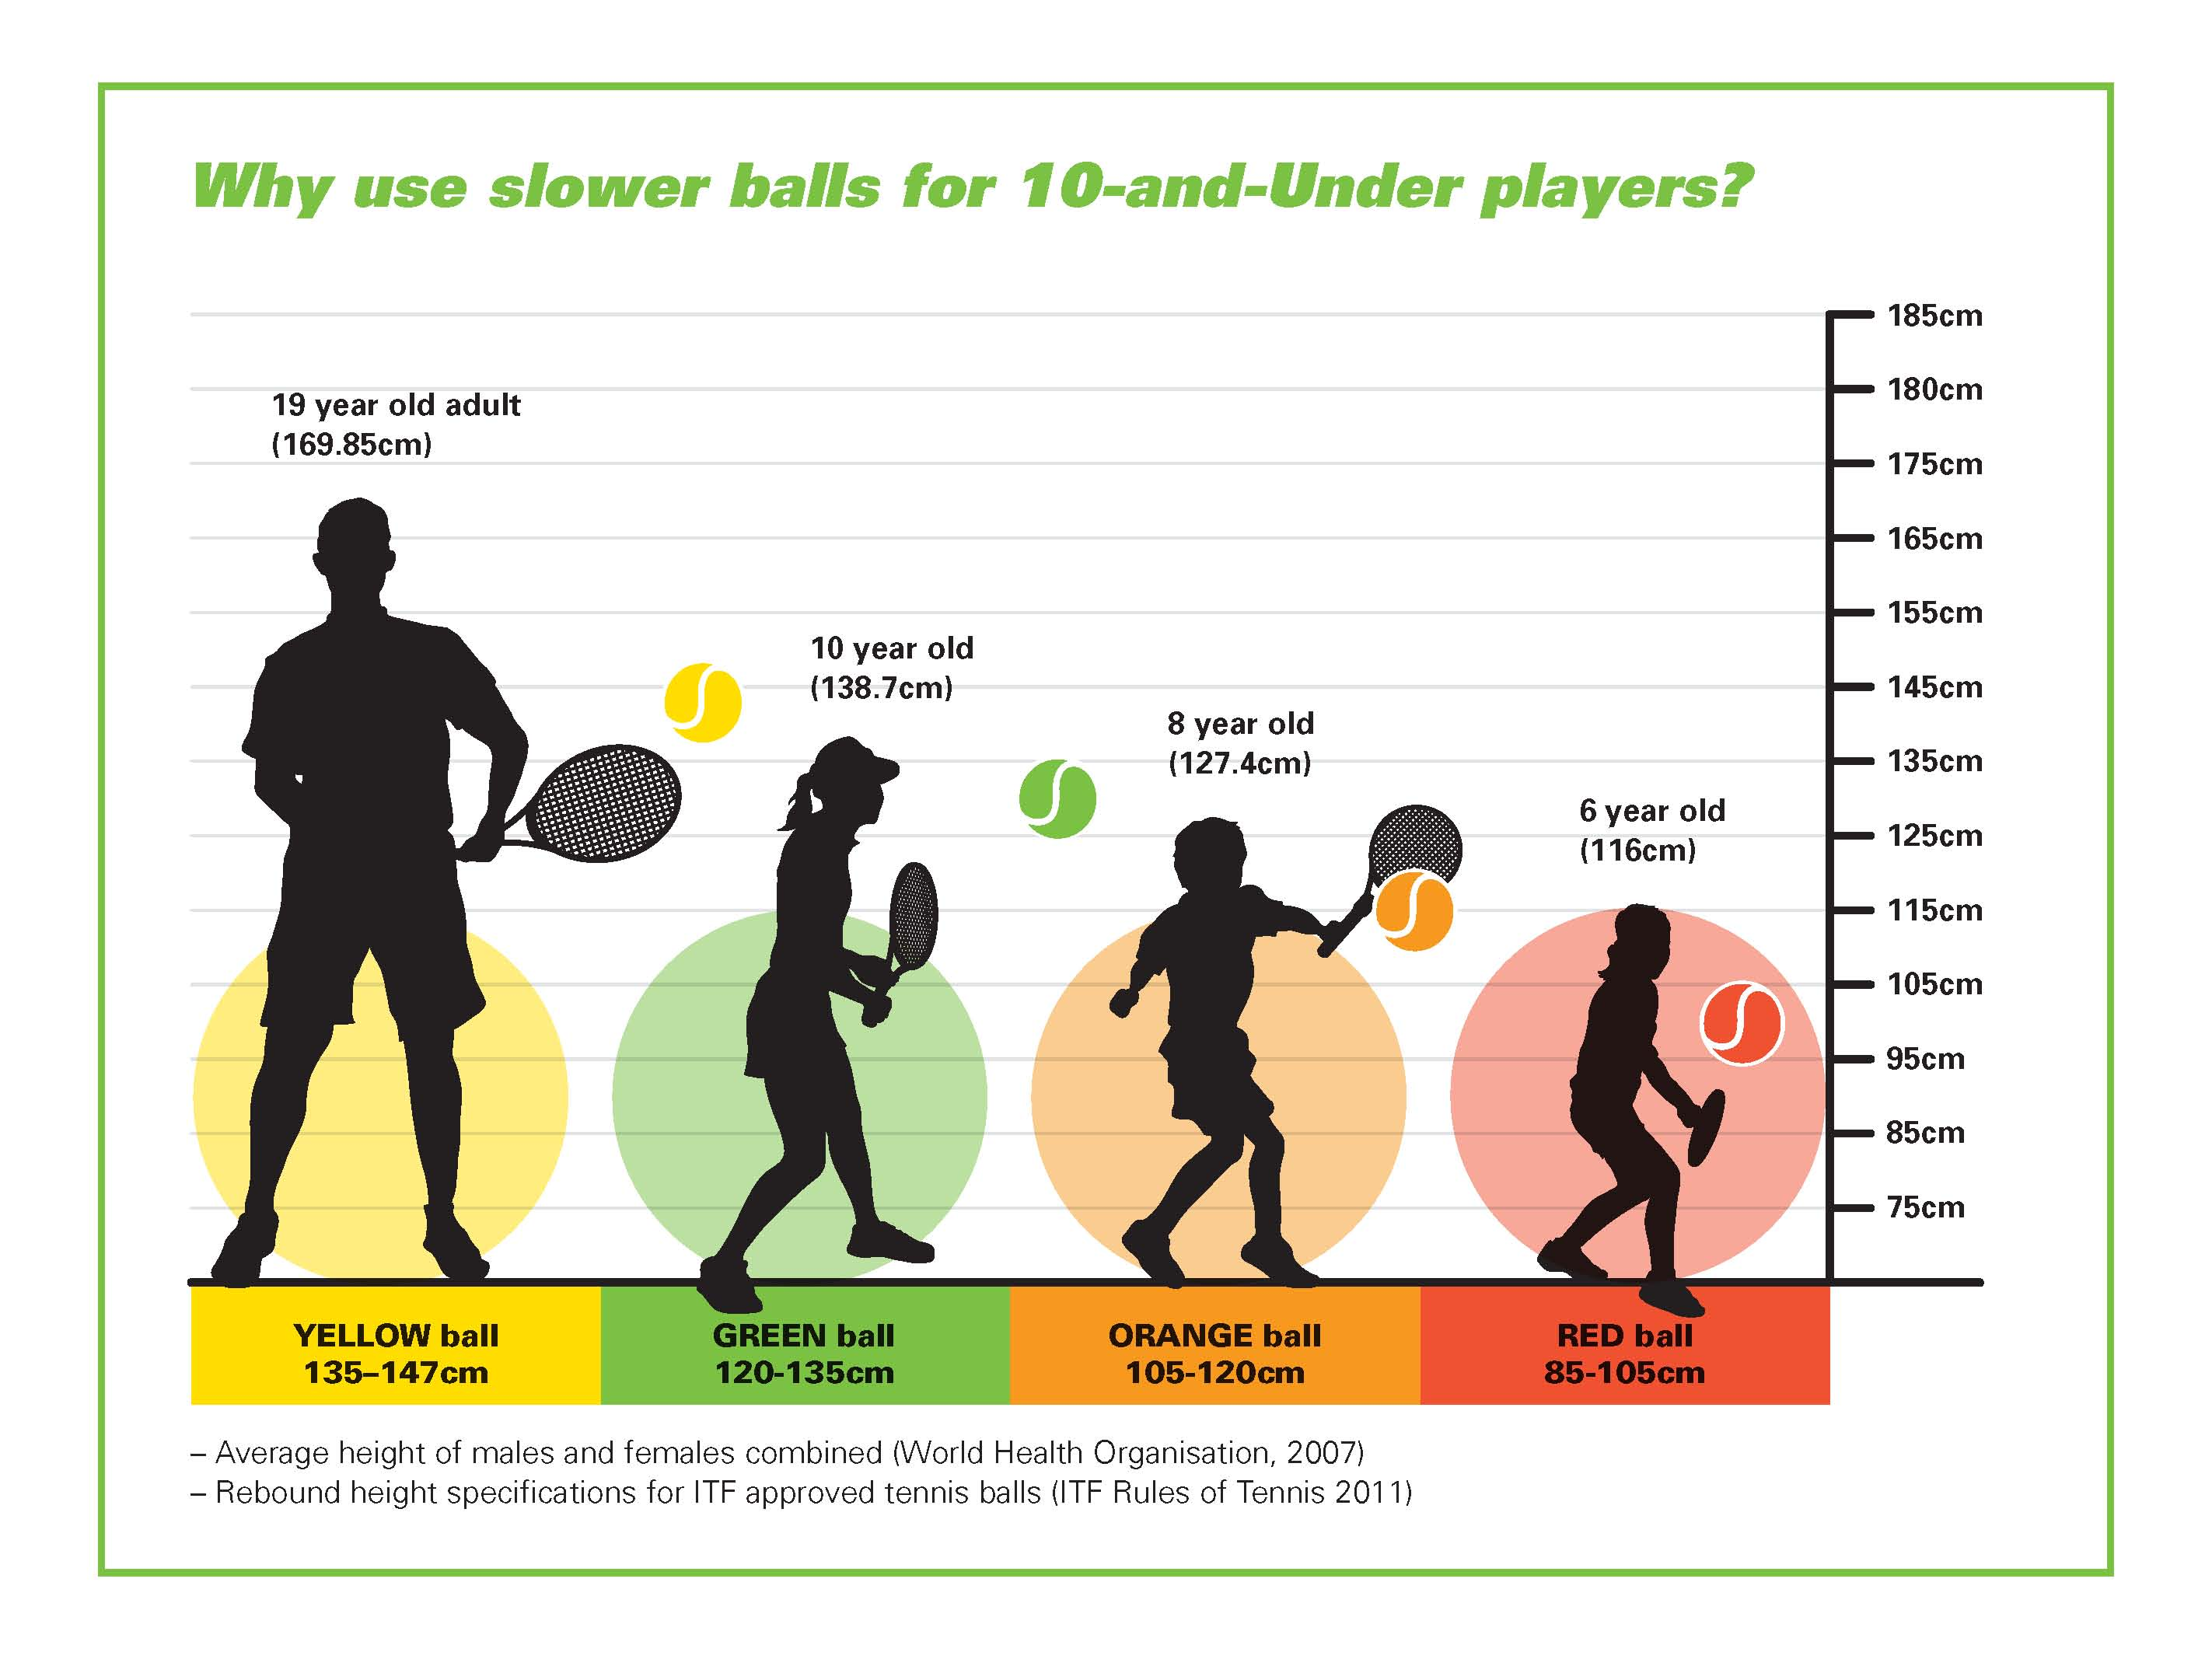 Why use slower balls for 10-and-Under players